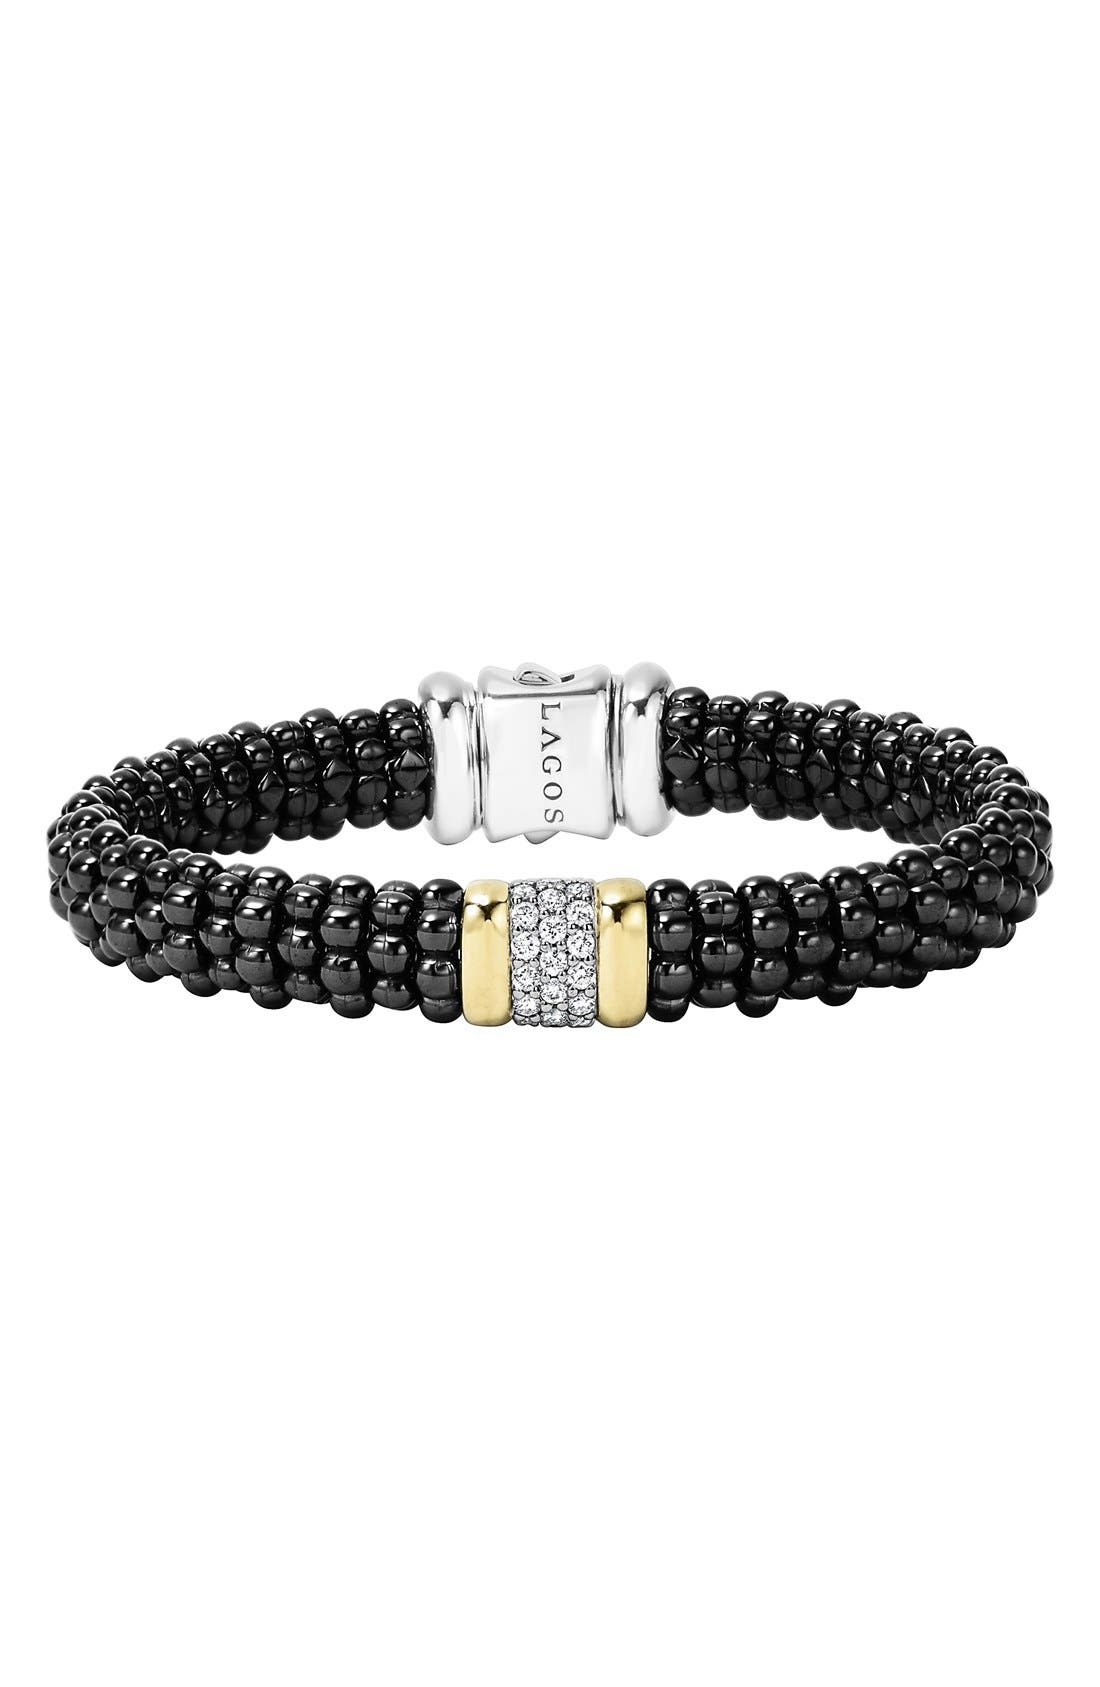 LAGOS 'Black Caviar' Diamond Rope Bracelet